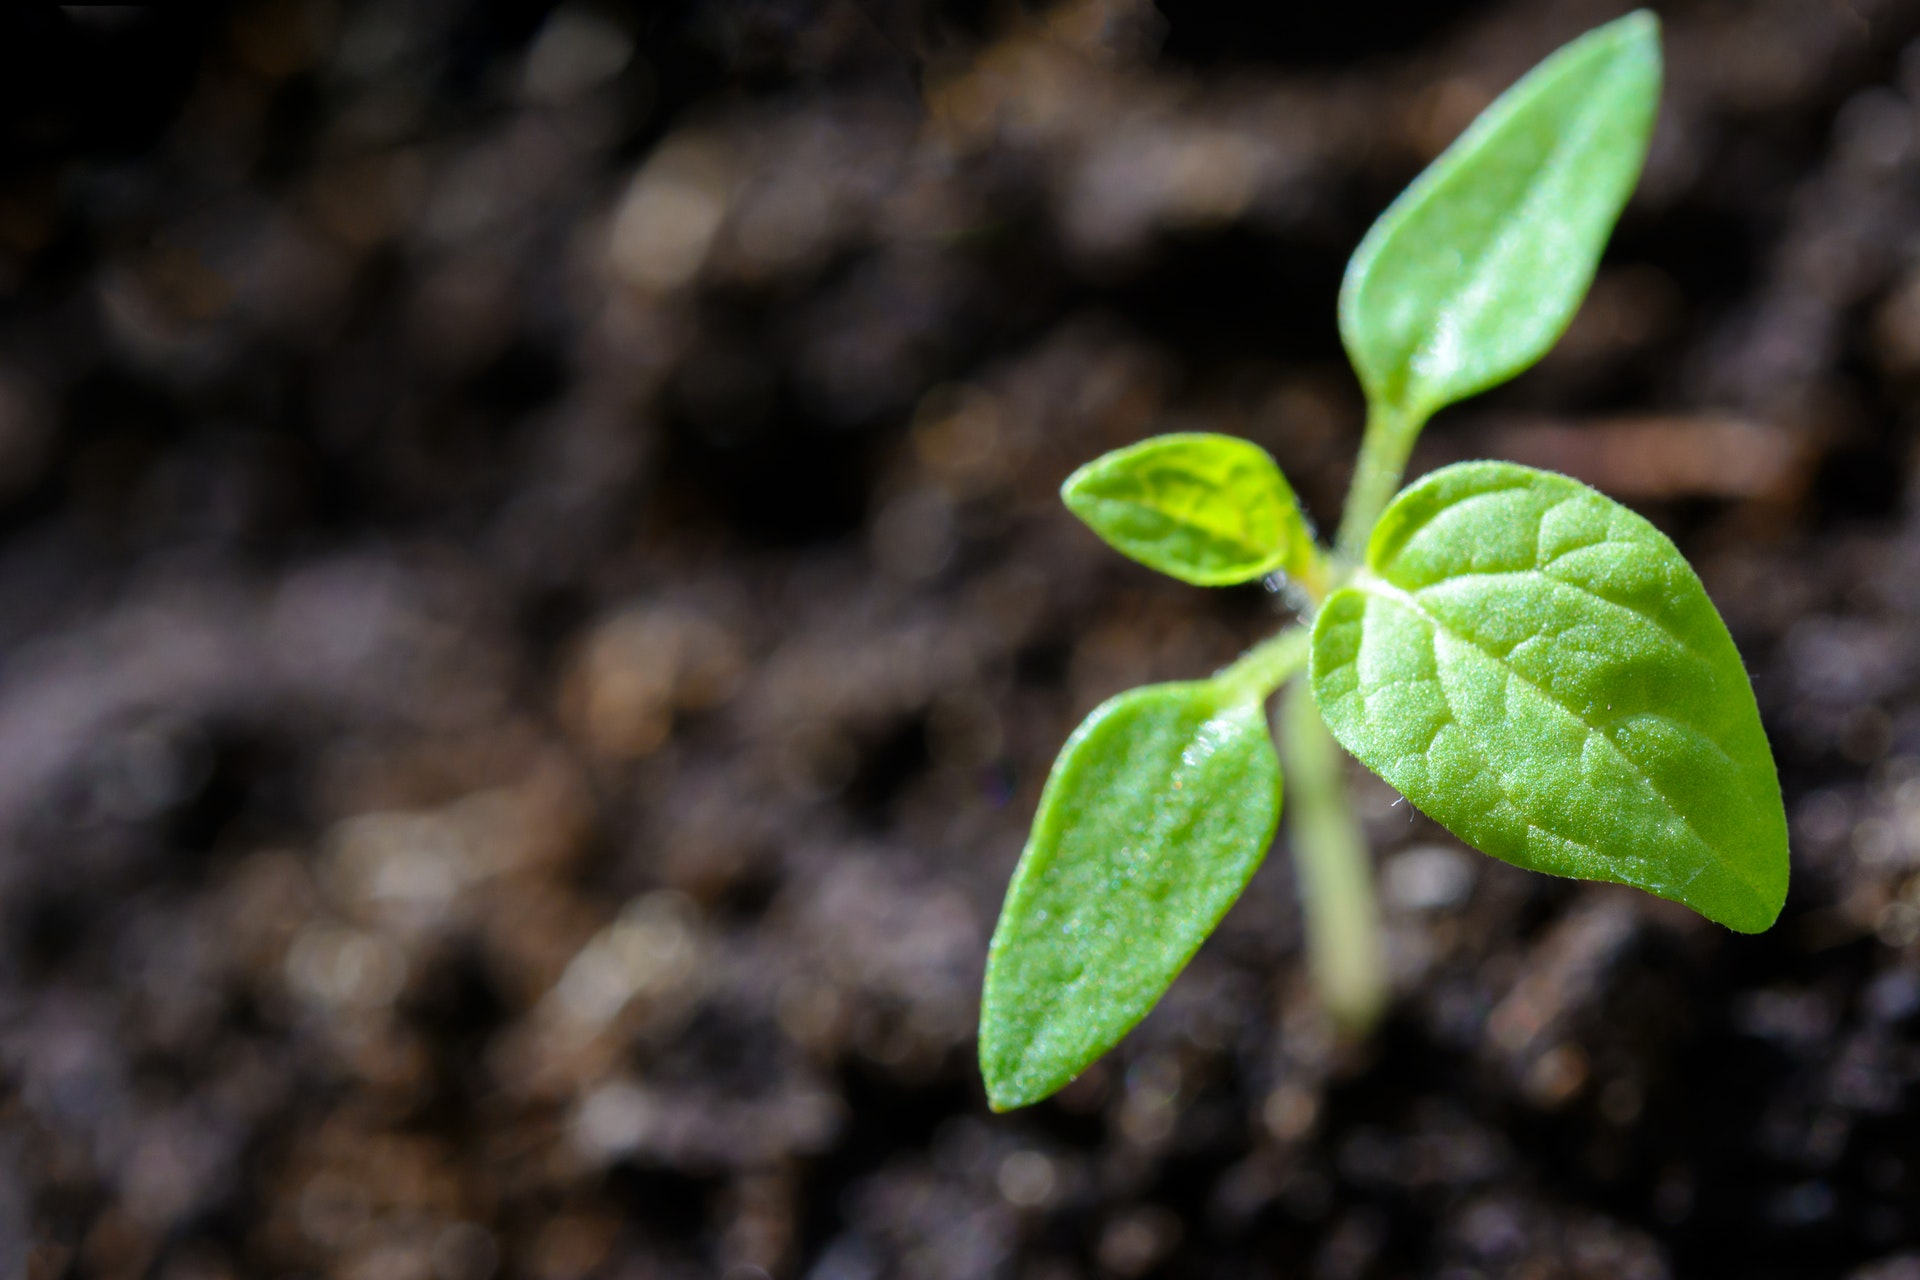 Your planned gift is like planting a seed that grows into a tree.